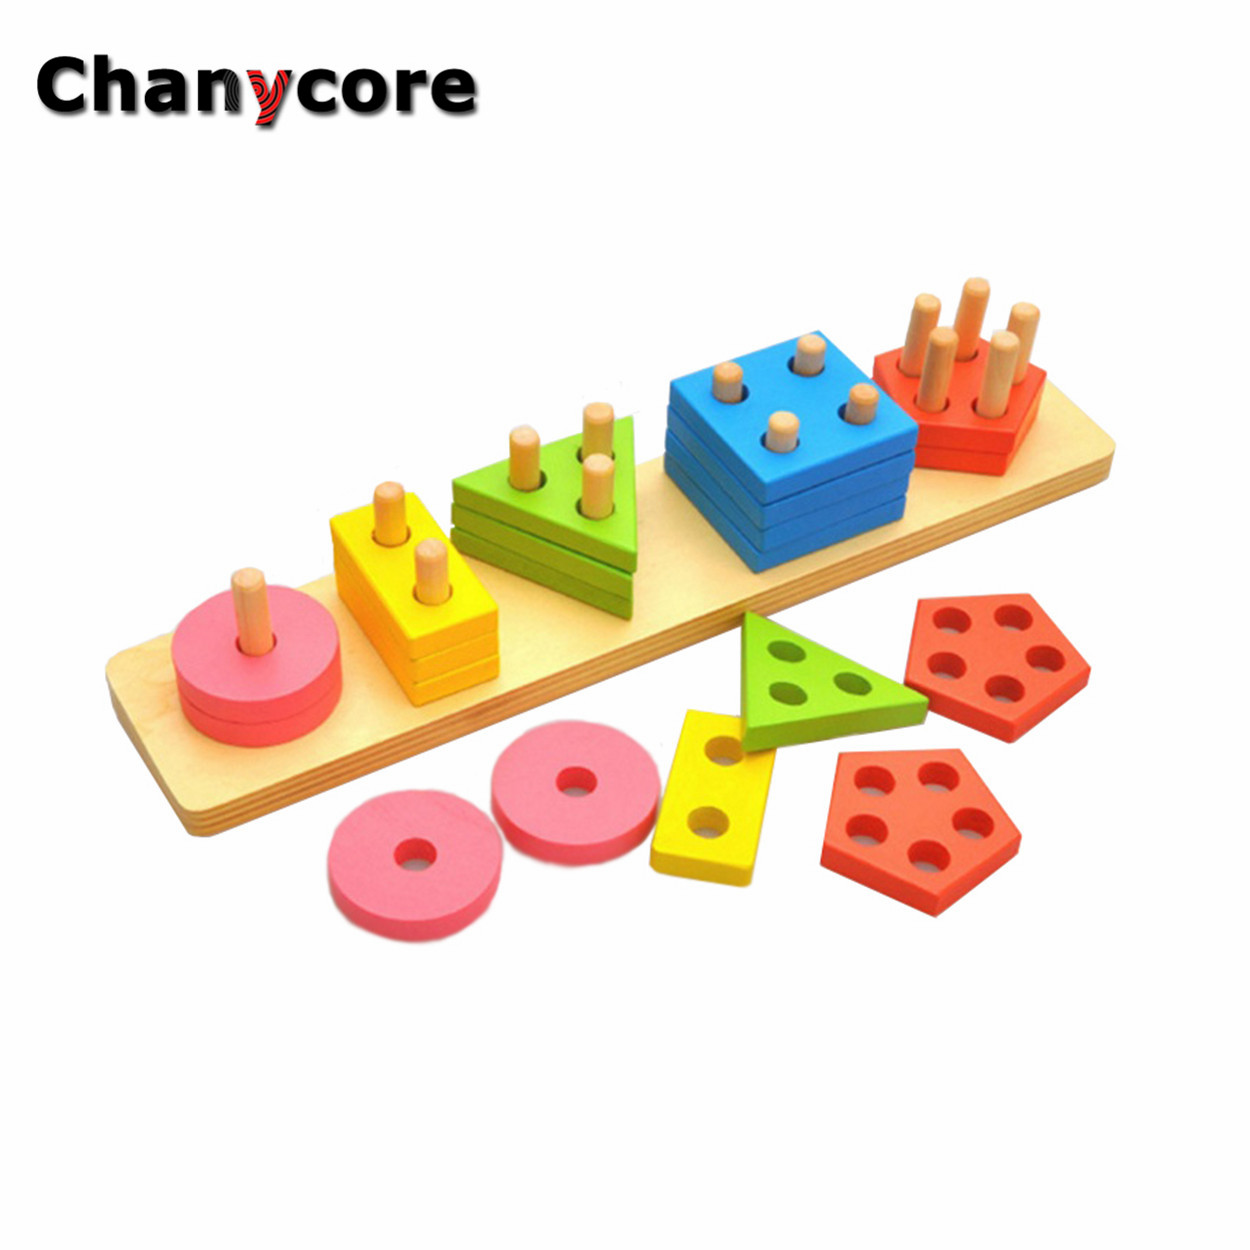 Baby Learning Educational Wooden Toys Geometric Shape Blocks Column Long Board Sorting Matching Montessori Kids Gifts 4111